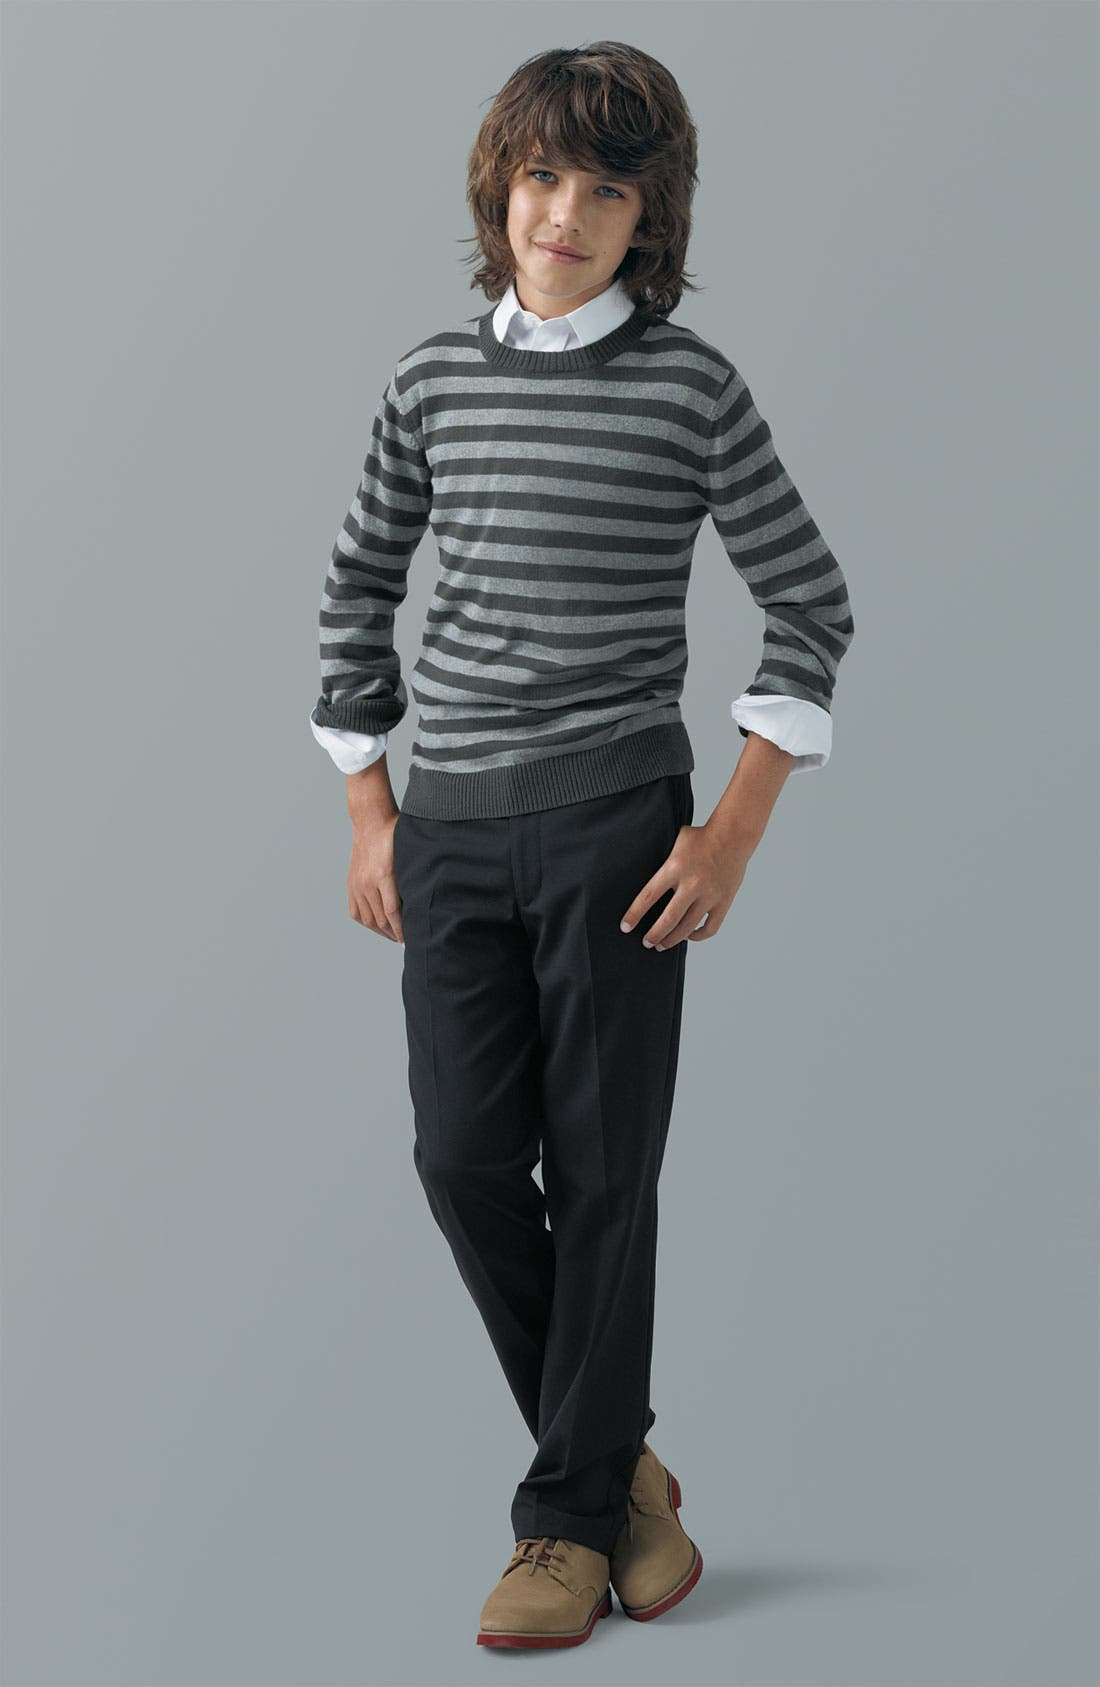 Alternate Image 1 Selected - Tucker + Tate Sweater, Nordstrom Shirt & Joseph Abboud Pants (Little Boys & Big Boys)